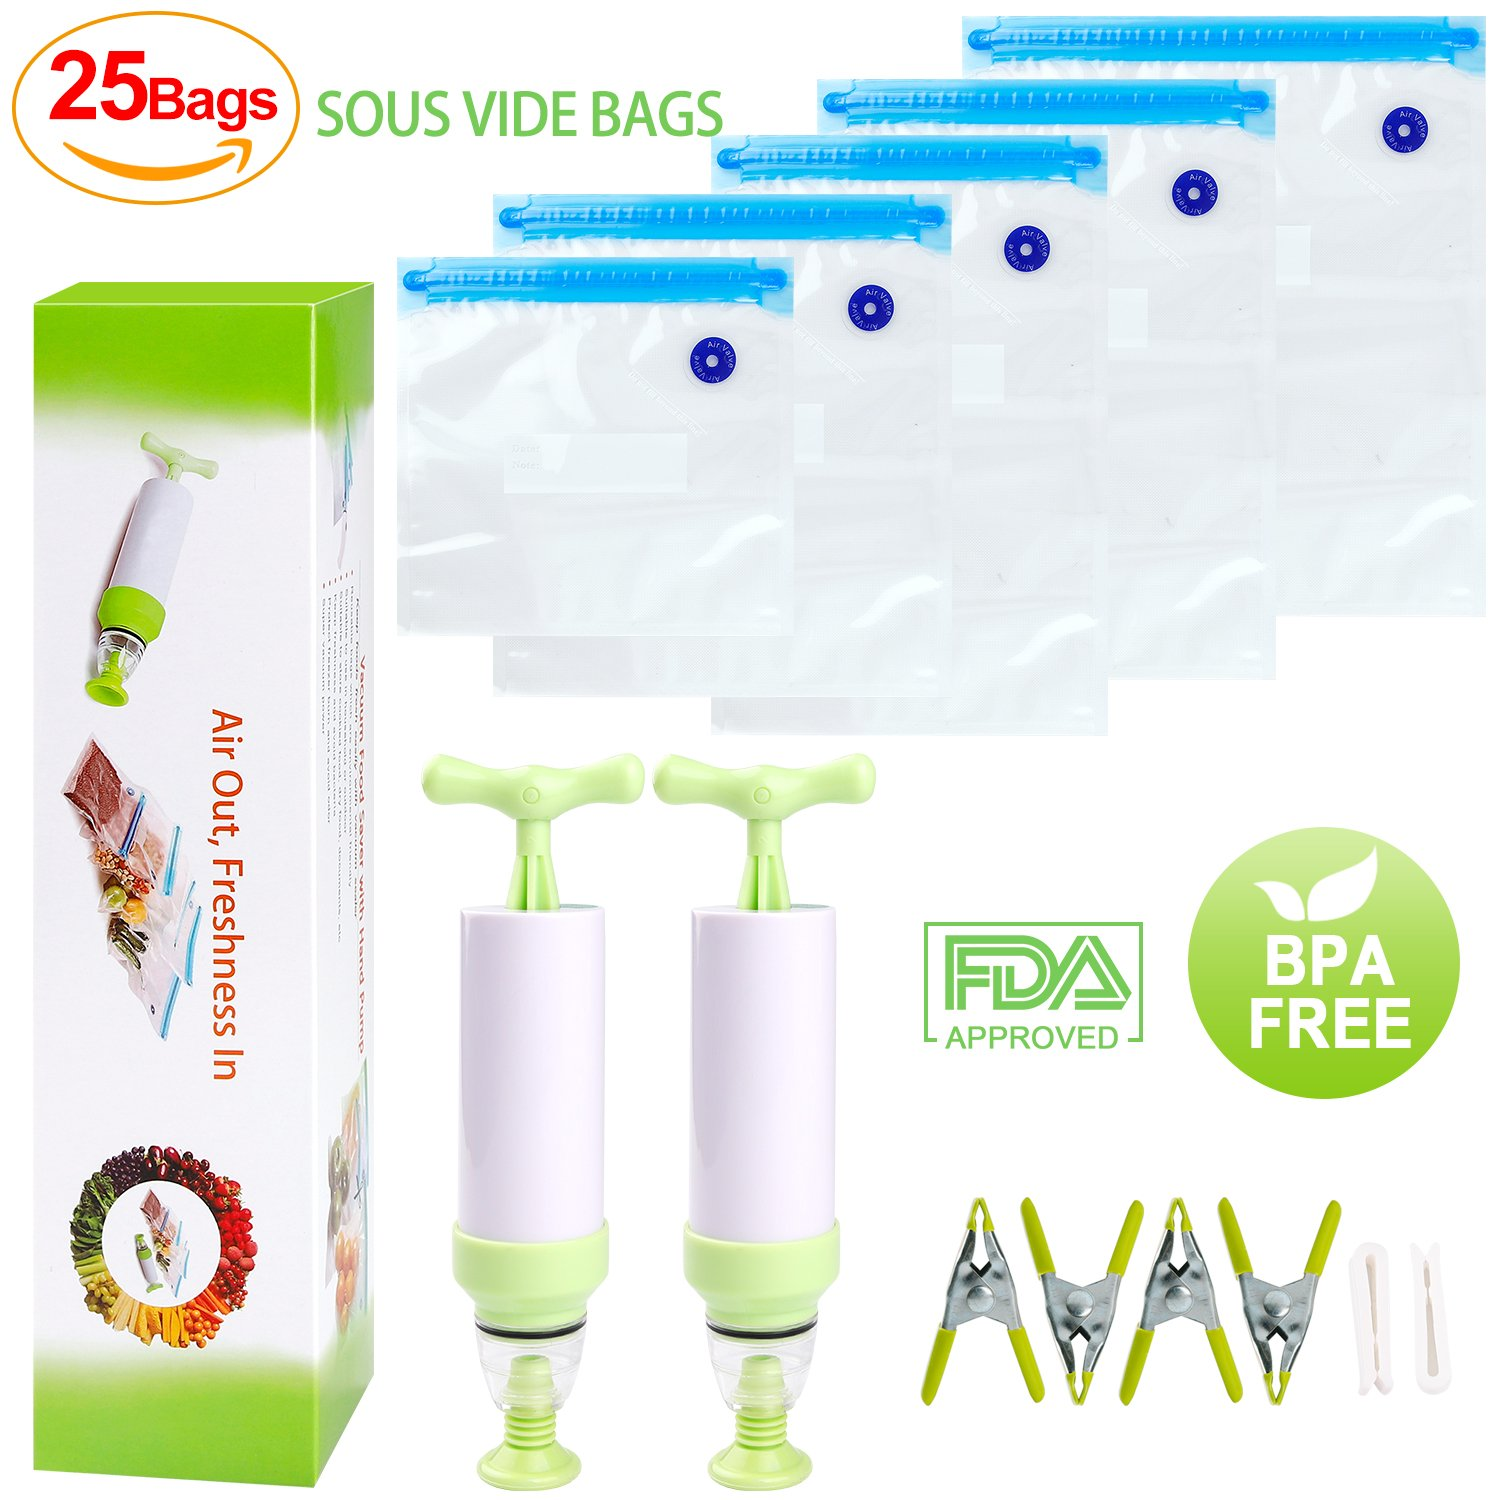 Sous Vide Bags Kit For Anova Cookers-25 Reuseble Food Vacuum Sealed Bags, Sous Vide Cooker Practical for Food Storage and Cooking, 2 Hand Pump, 2 Bag Sealing Clips and 4 Sous Vide Clips, Easy to Use